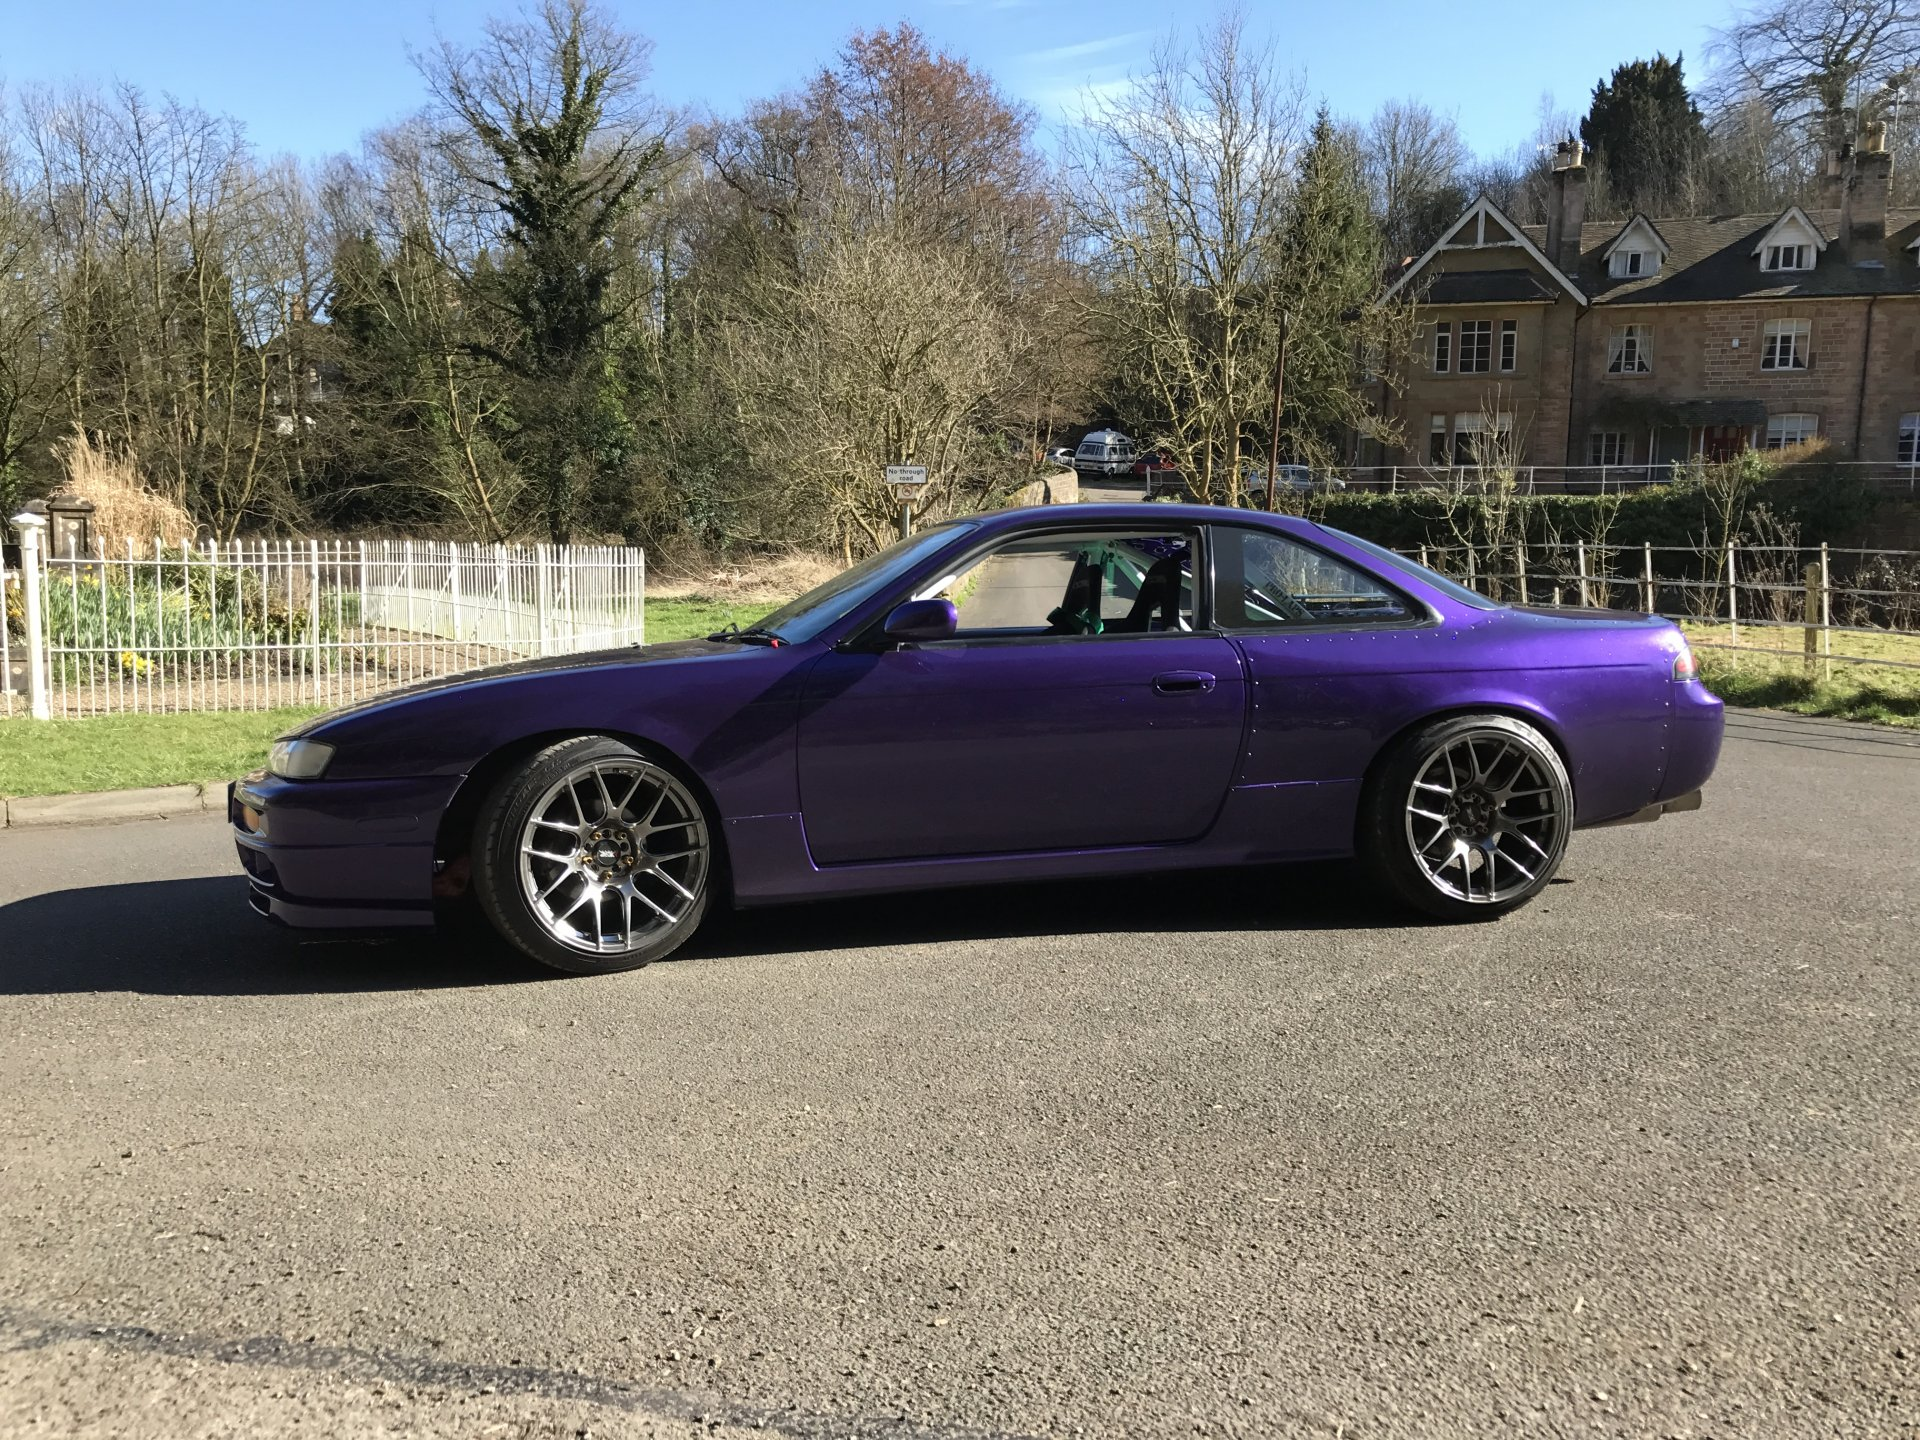 Drift Car For Sale: Nissan S14a (S14 BDC Private Reg) Full Respray